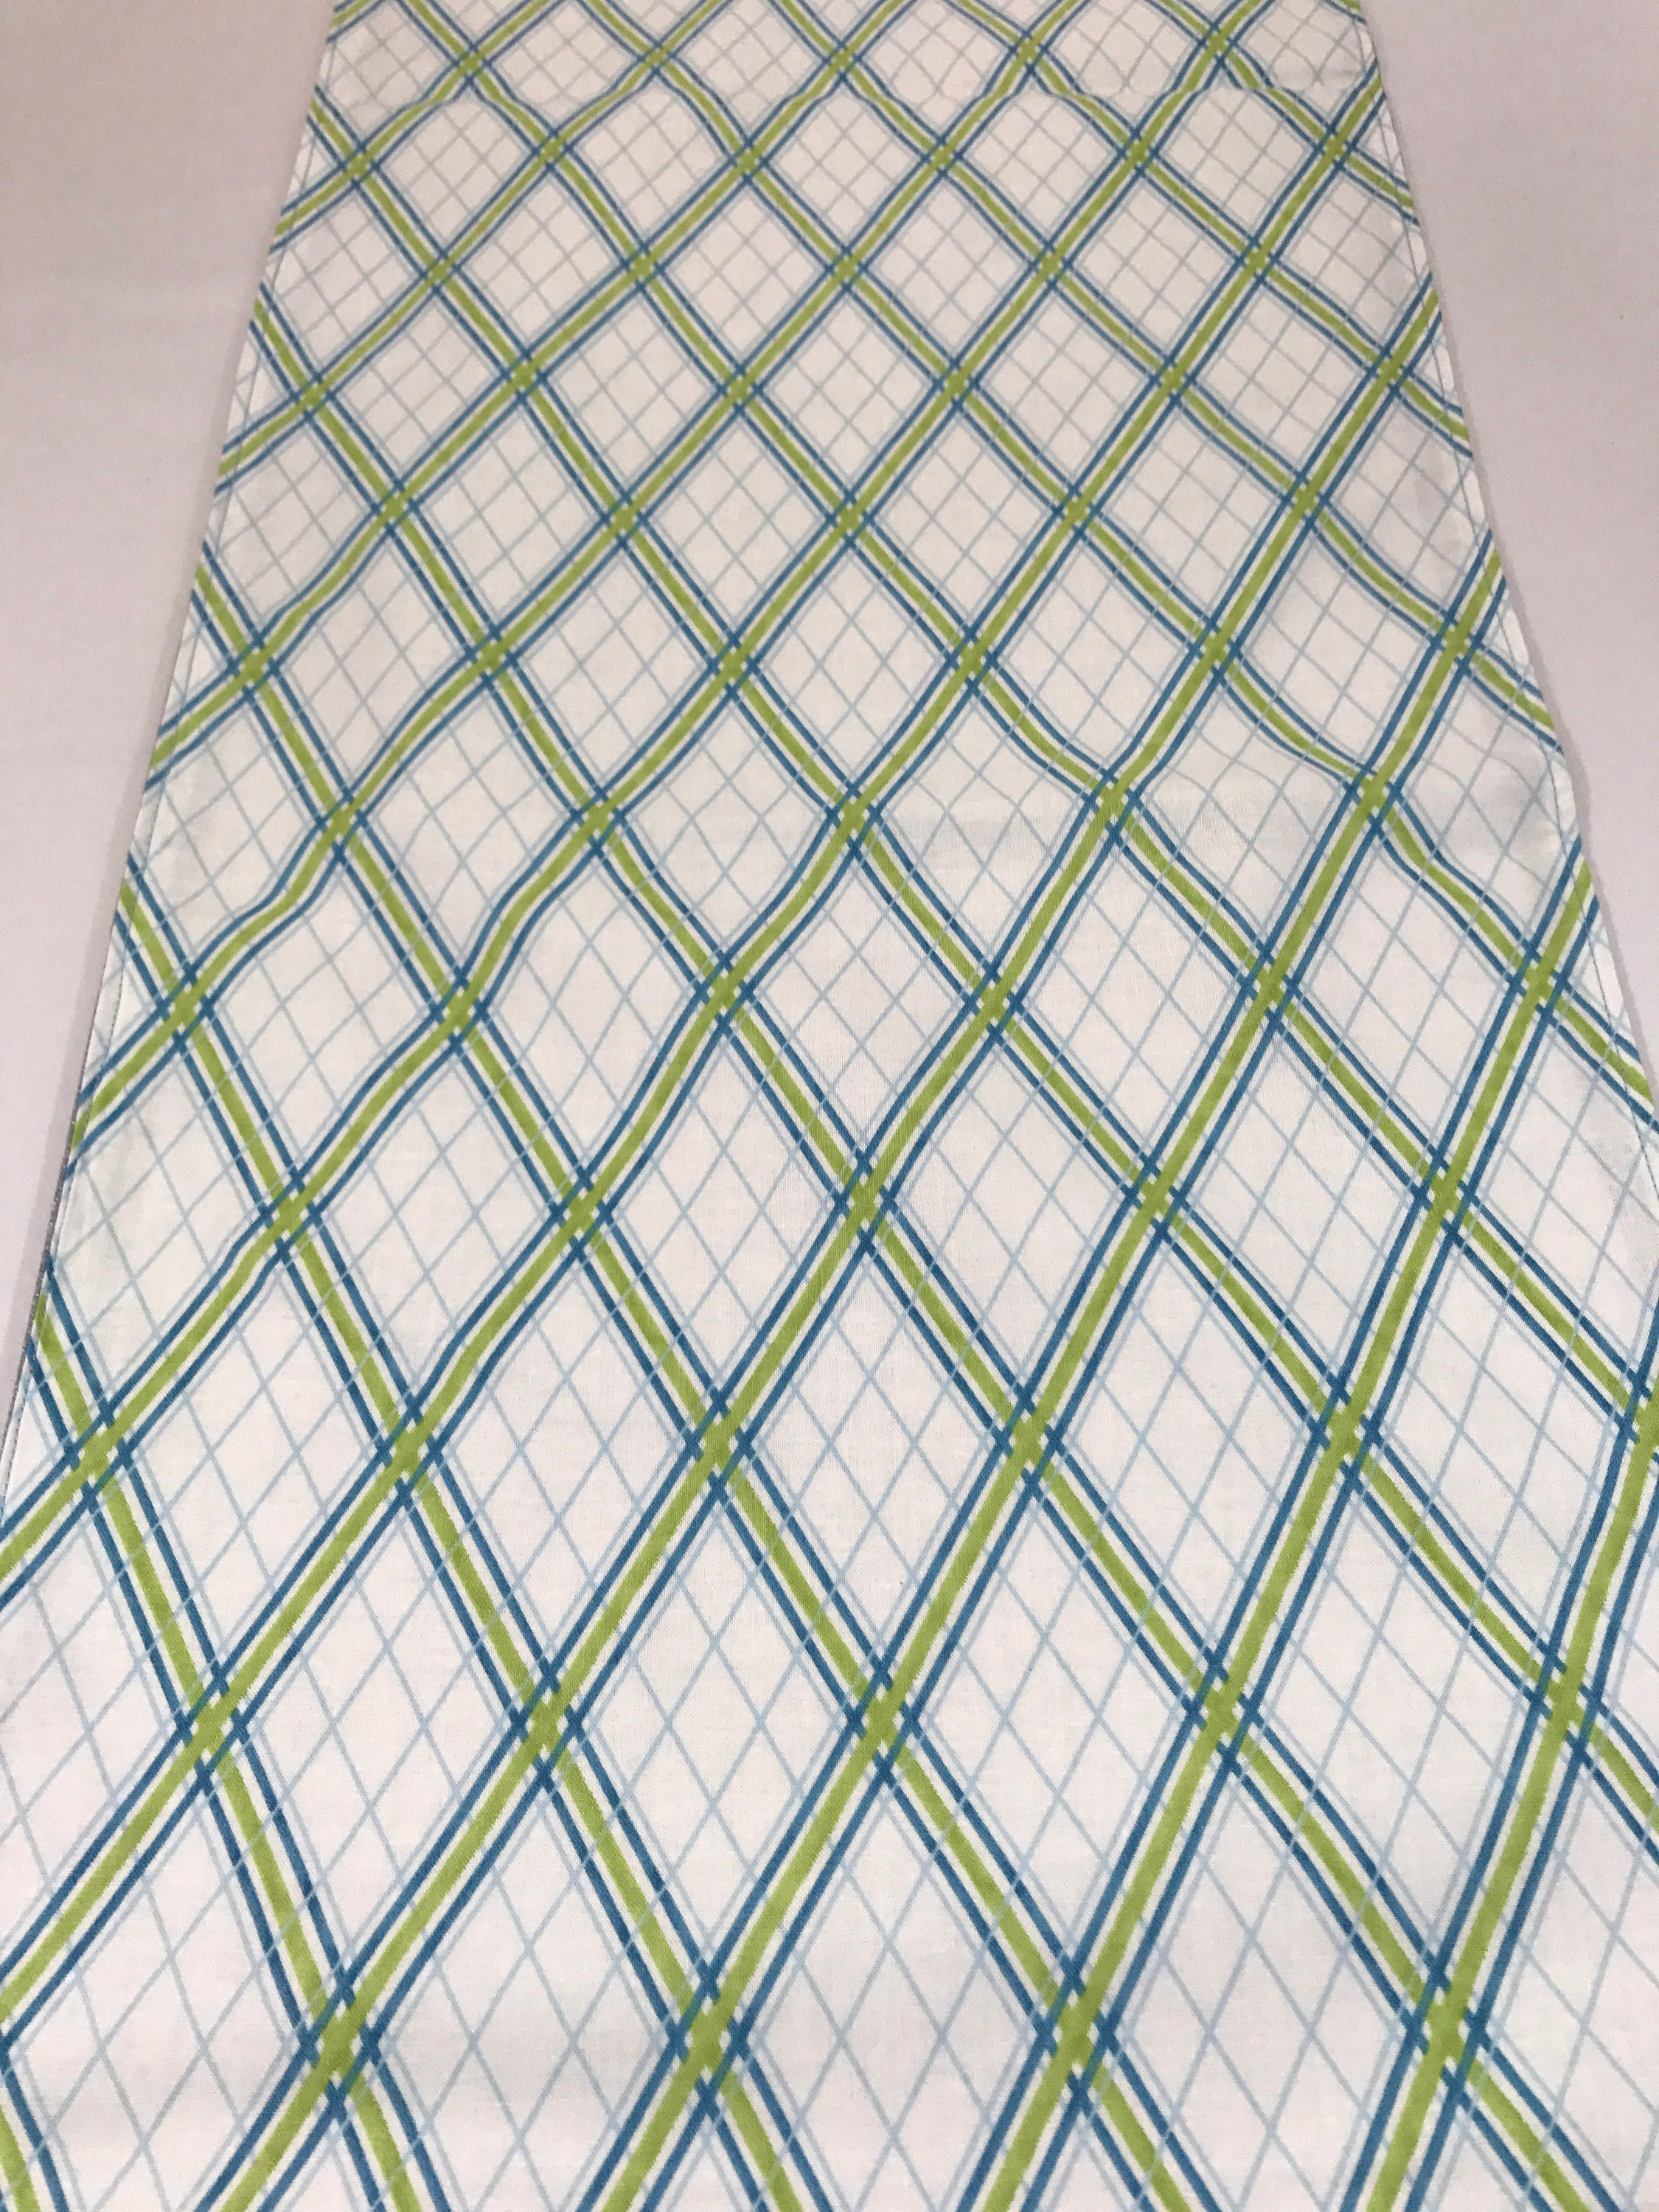 ... Green Table Decor, Reversible Table Runner. Gallery Photo ...